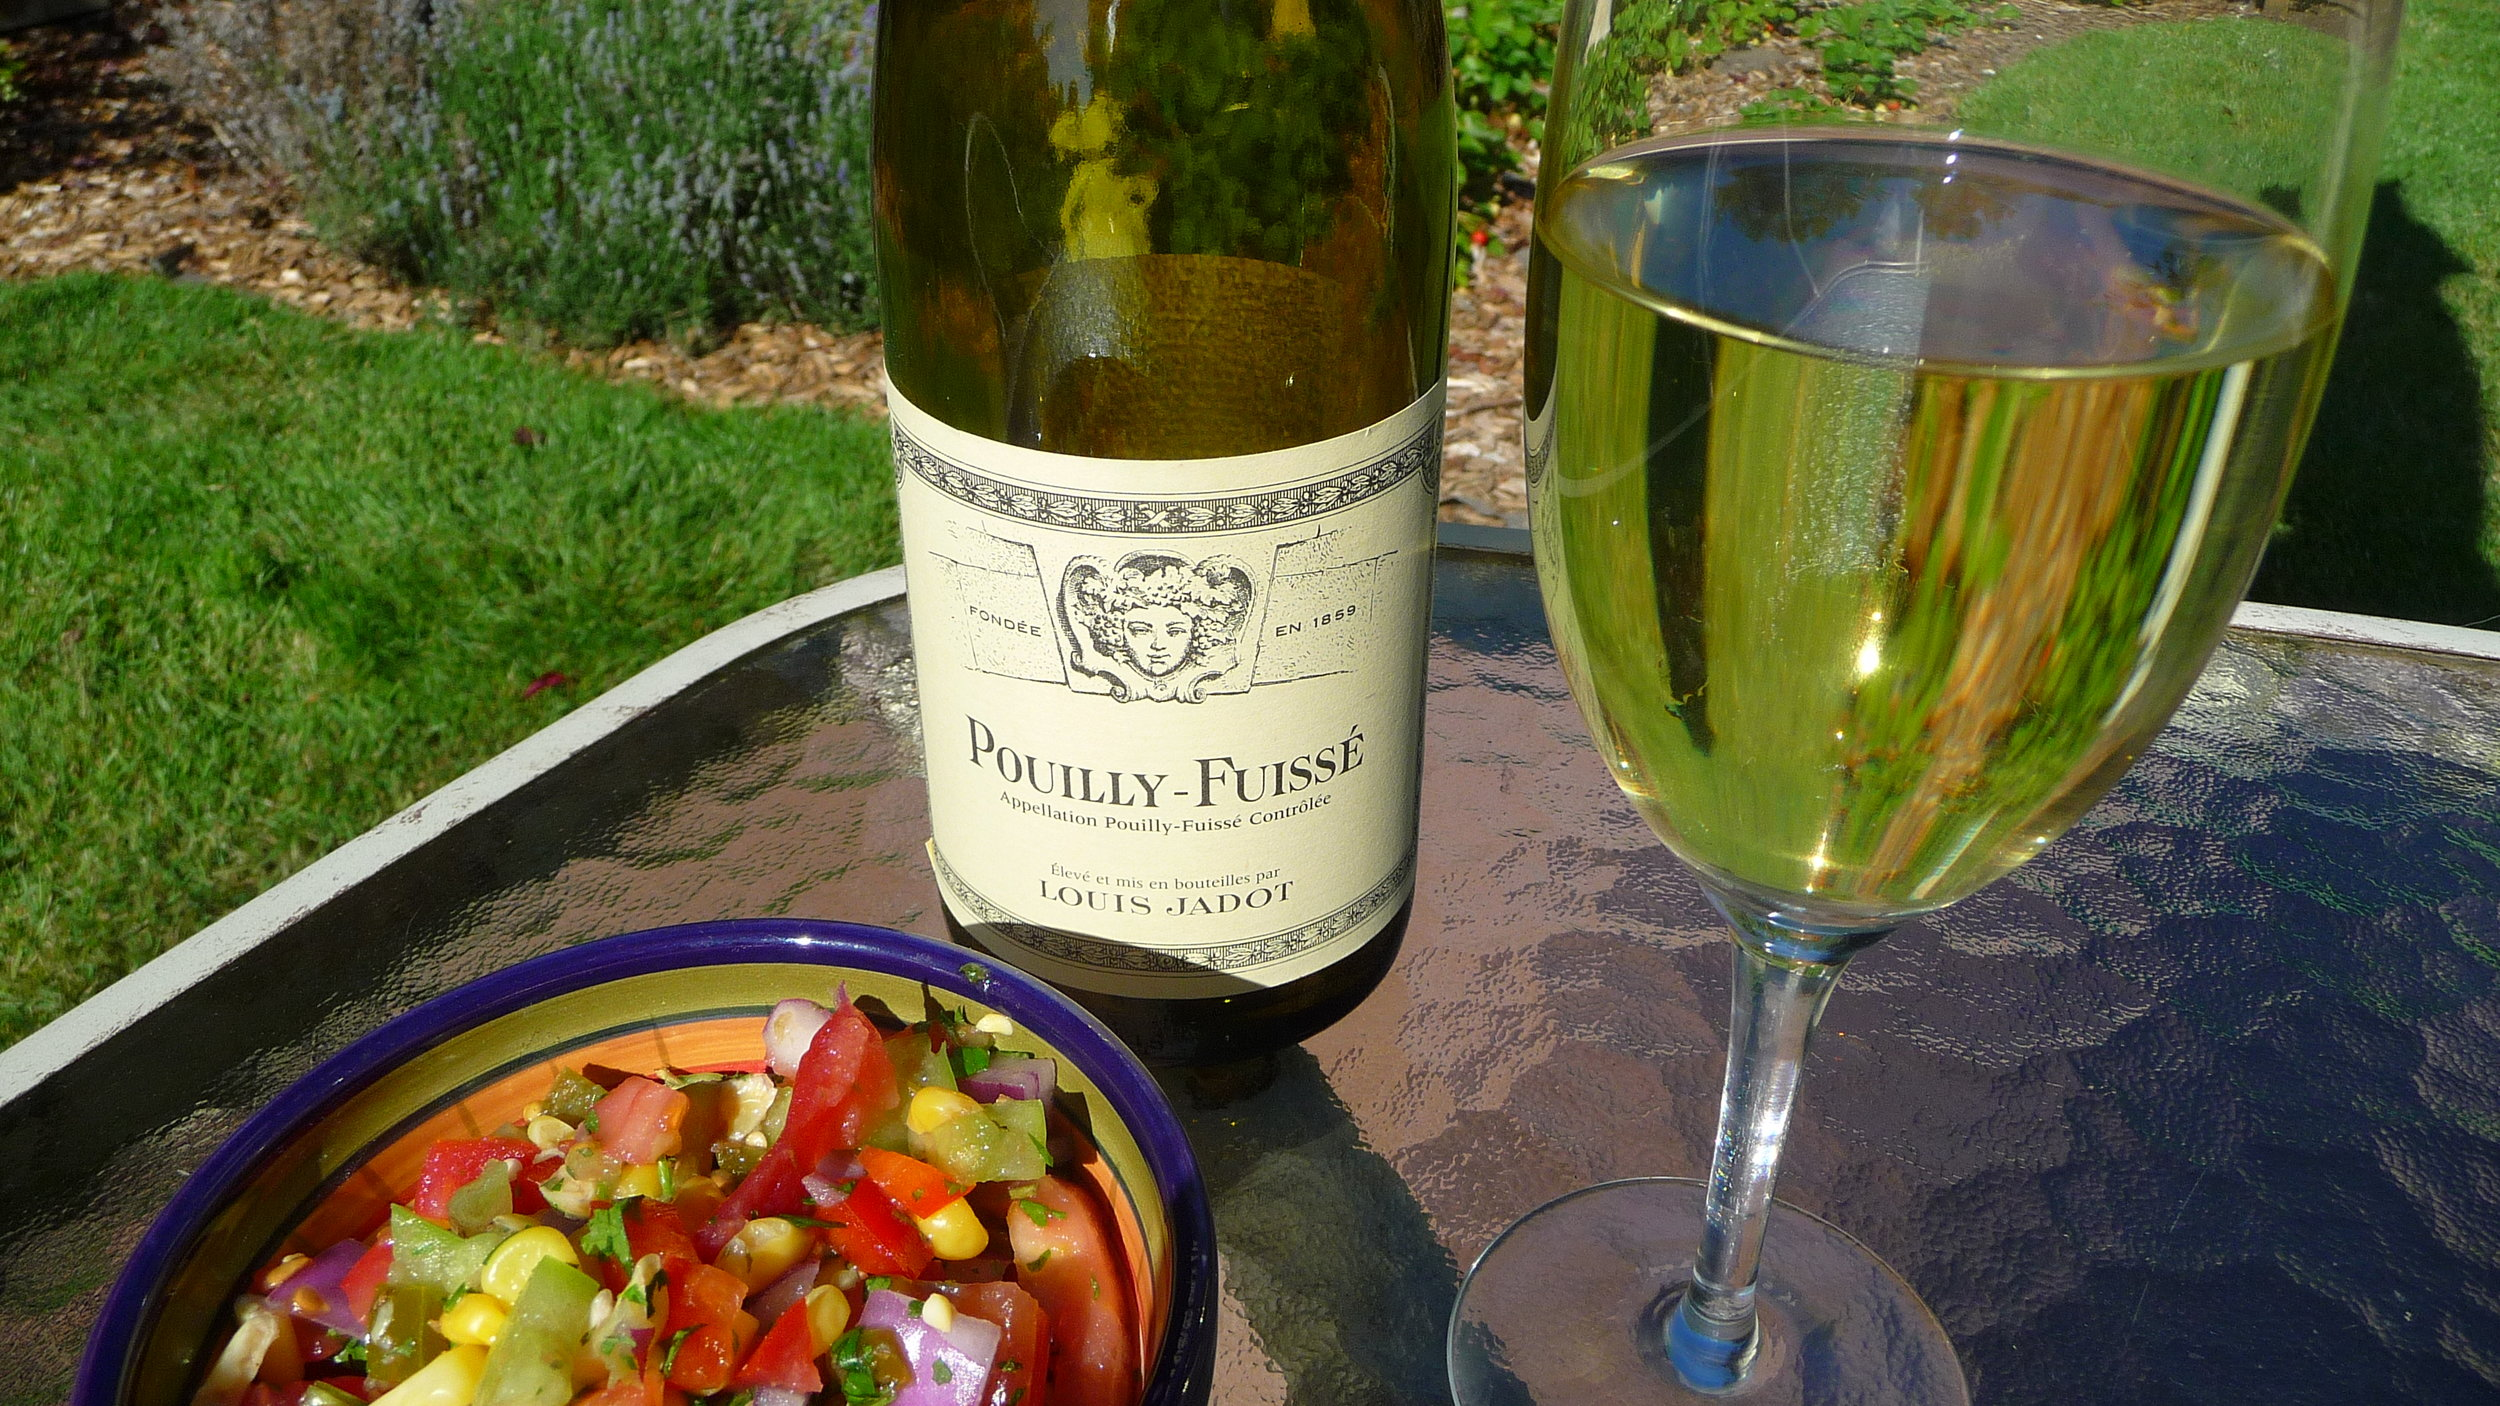 2012 Louis Jadot Pouilly-Fuissé (It's not this green; that's our lawn showing through)